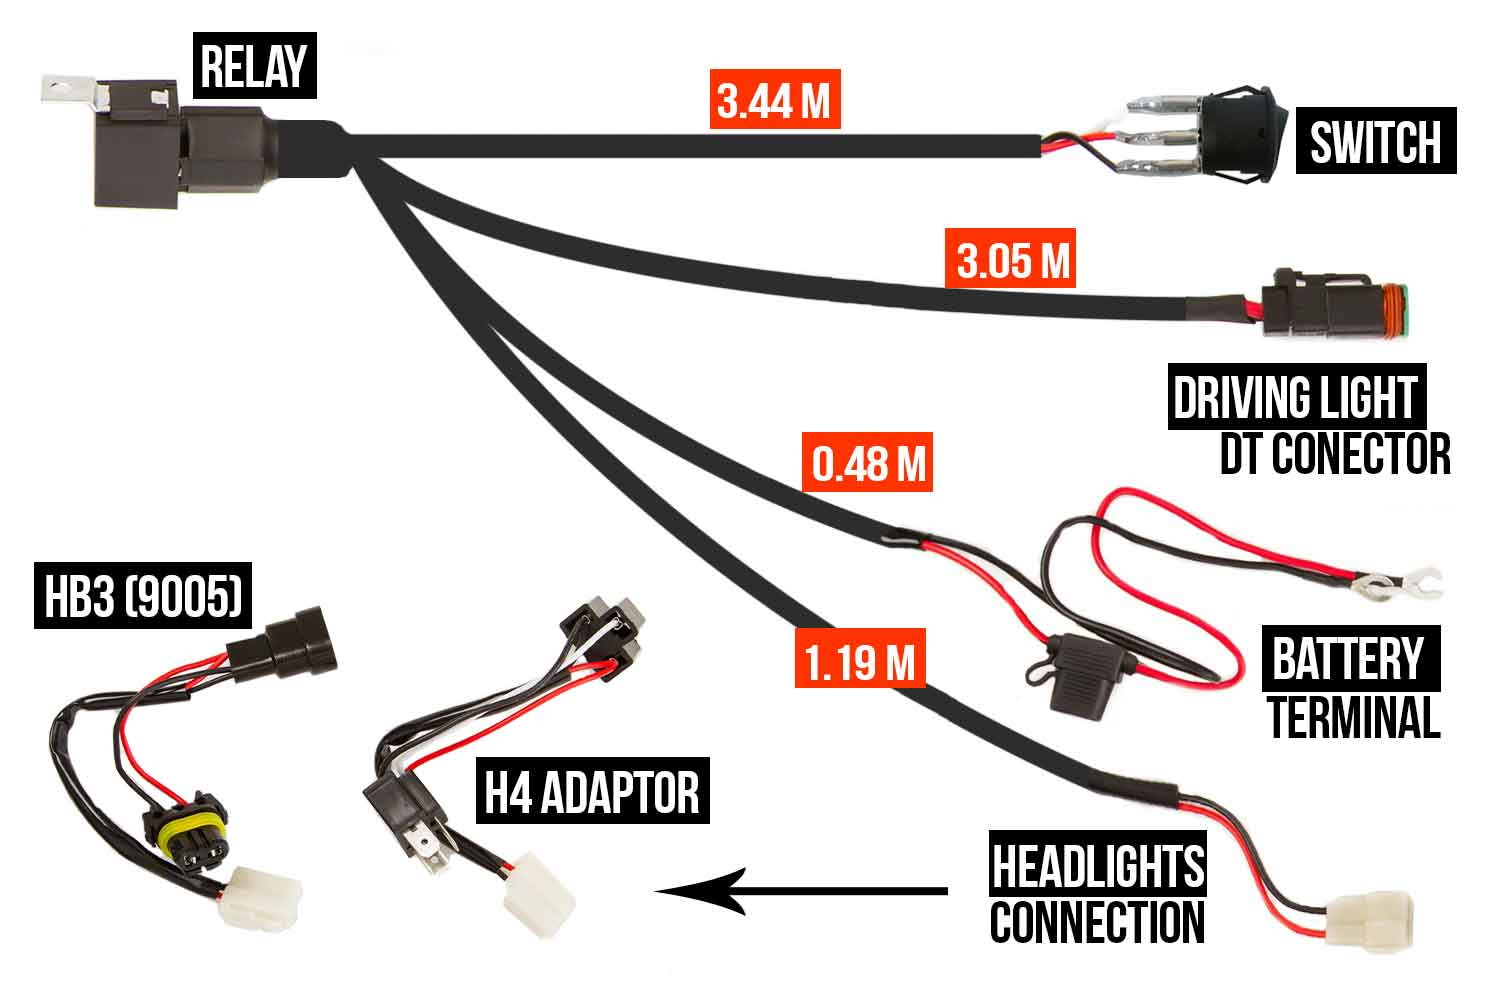 H4 Hb3 Wiring Harness For Led Driving Lights Gemtek Australia Jeep Light Diagram 05 9005